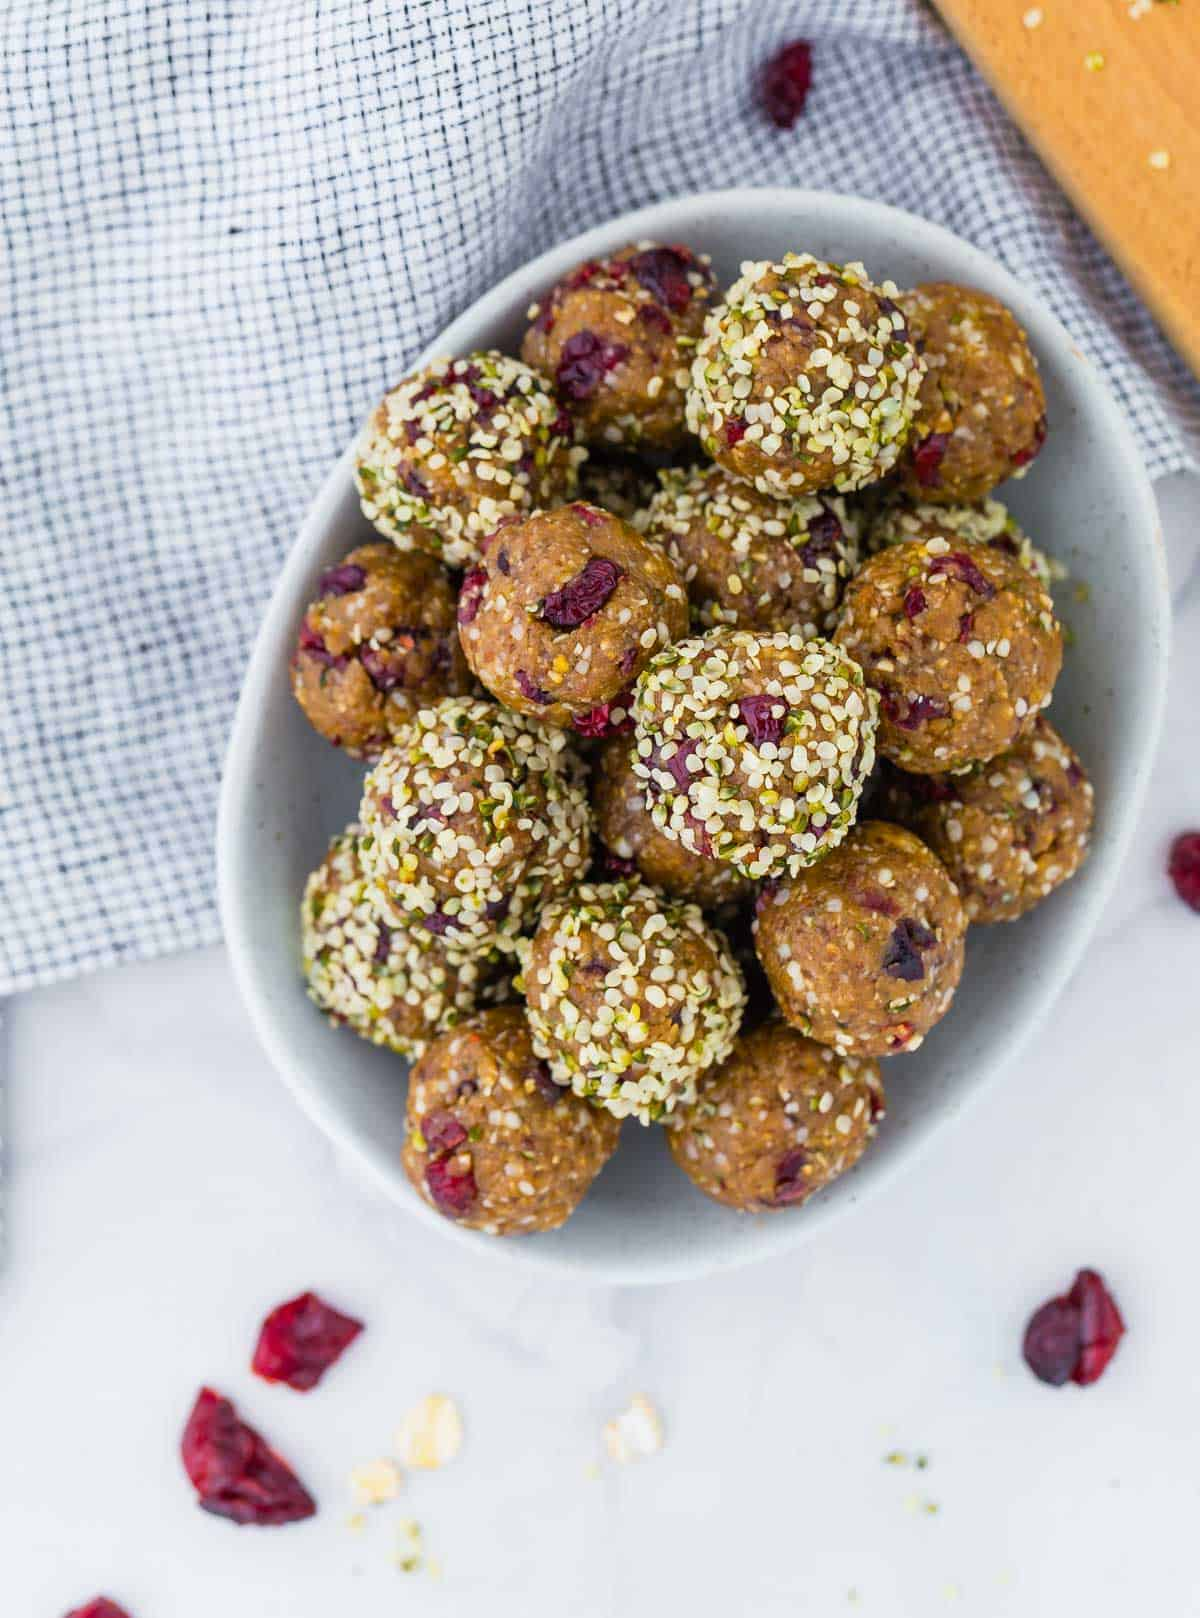 Overhead view of oatmeal energy bites in a bowl, with dried cranberries.